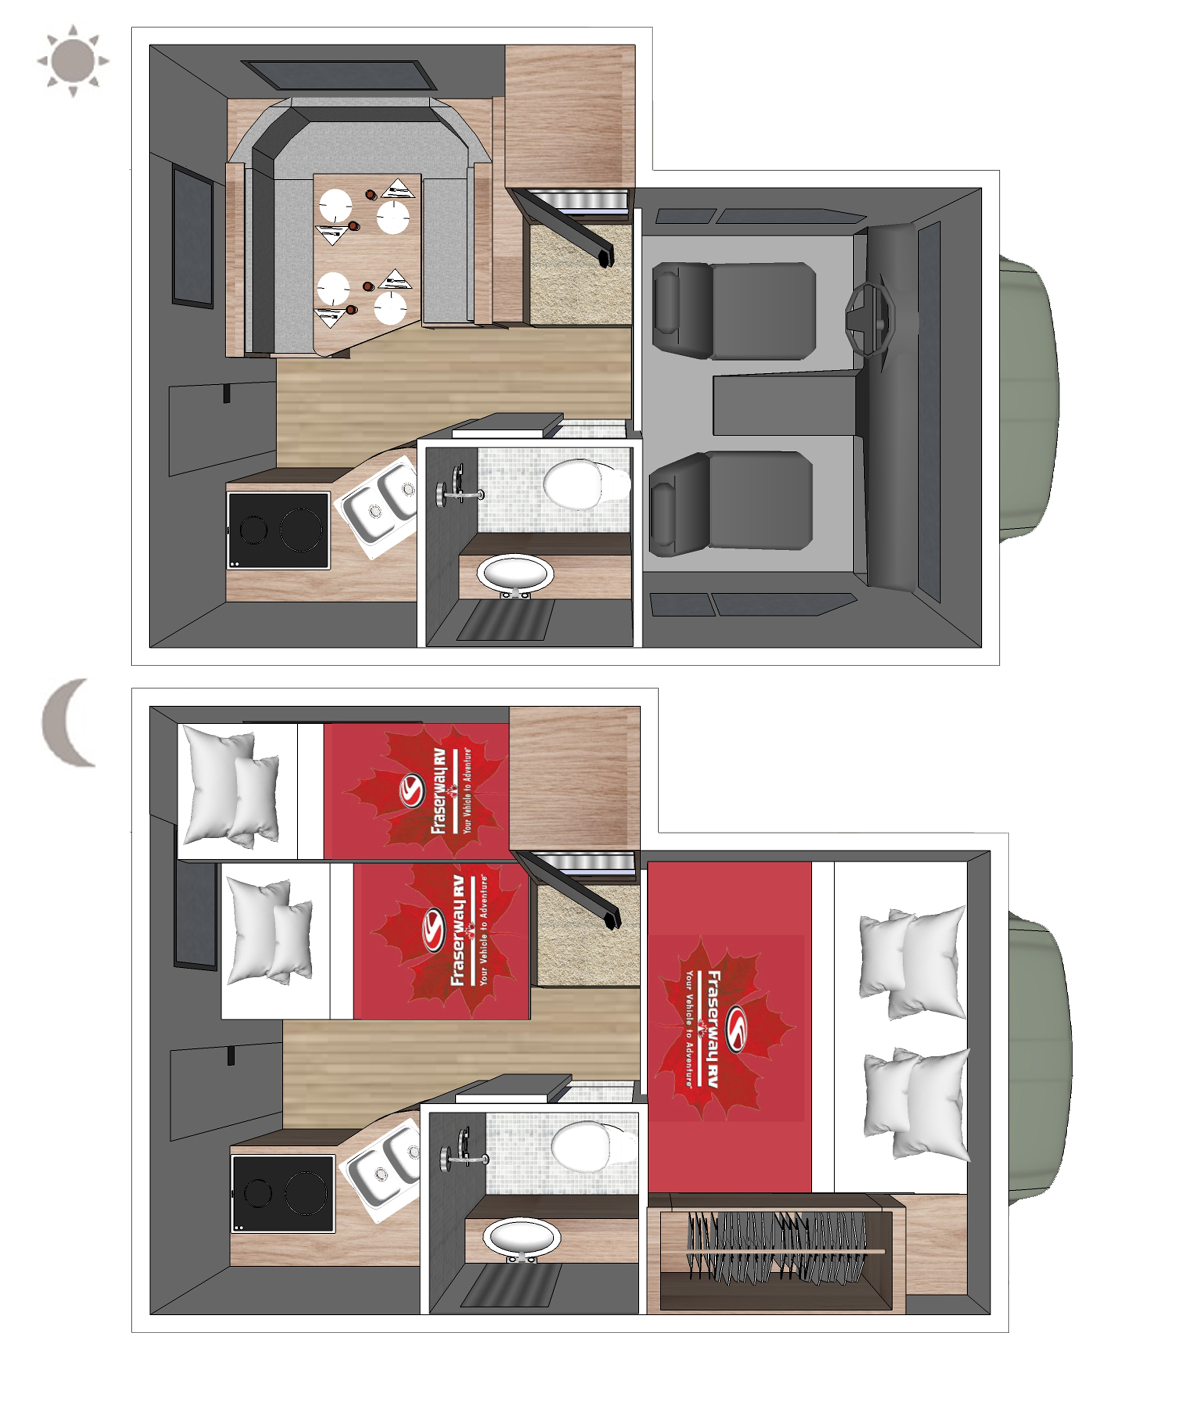 Truck Camper Slide-Bunk Floor plan (day and night)